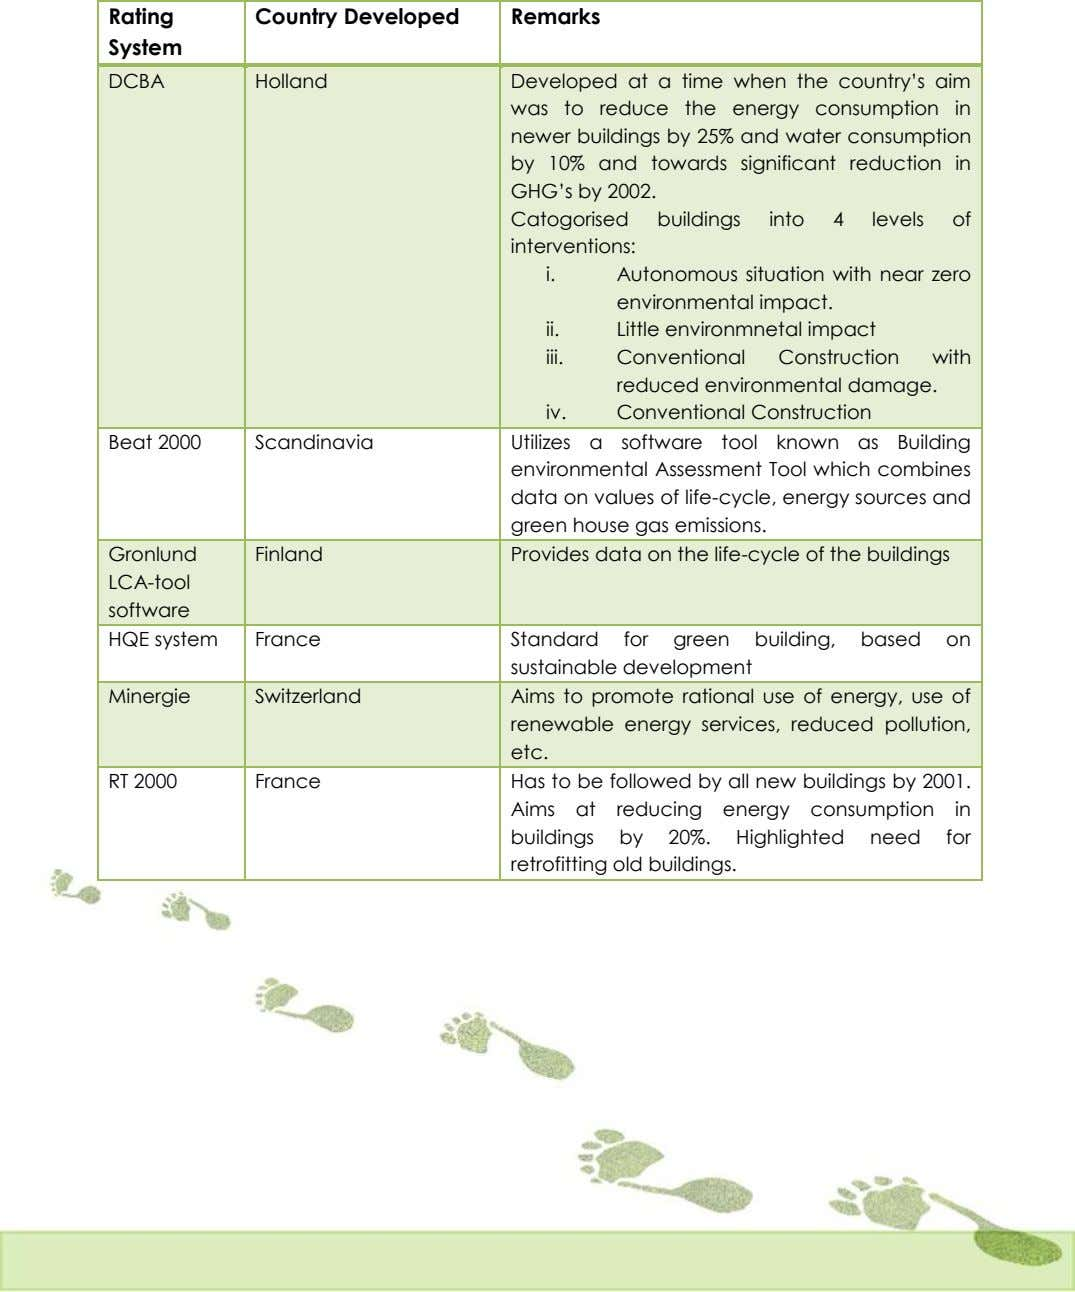 Rating Country Developed Remarks System DCBA Holland Developed at a time when the country's aim